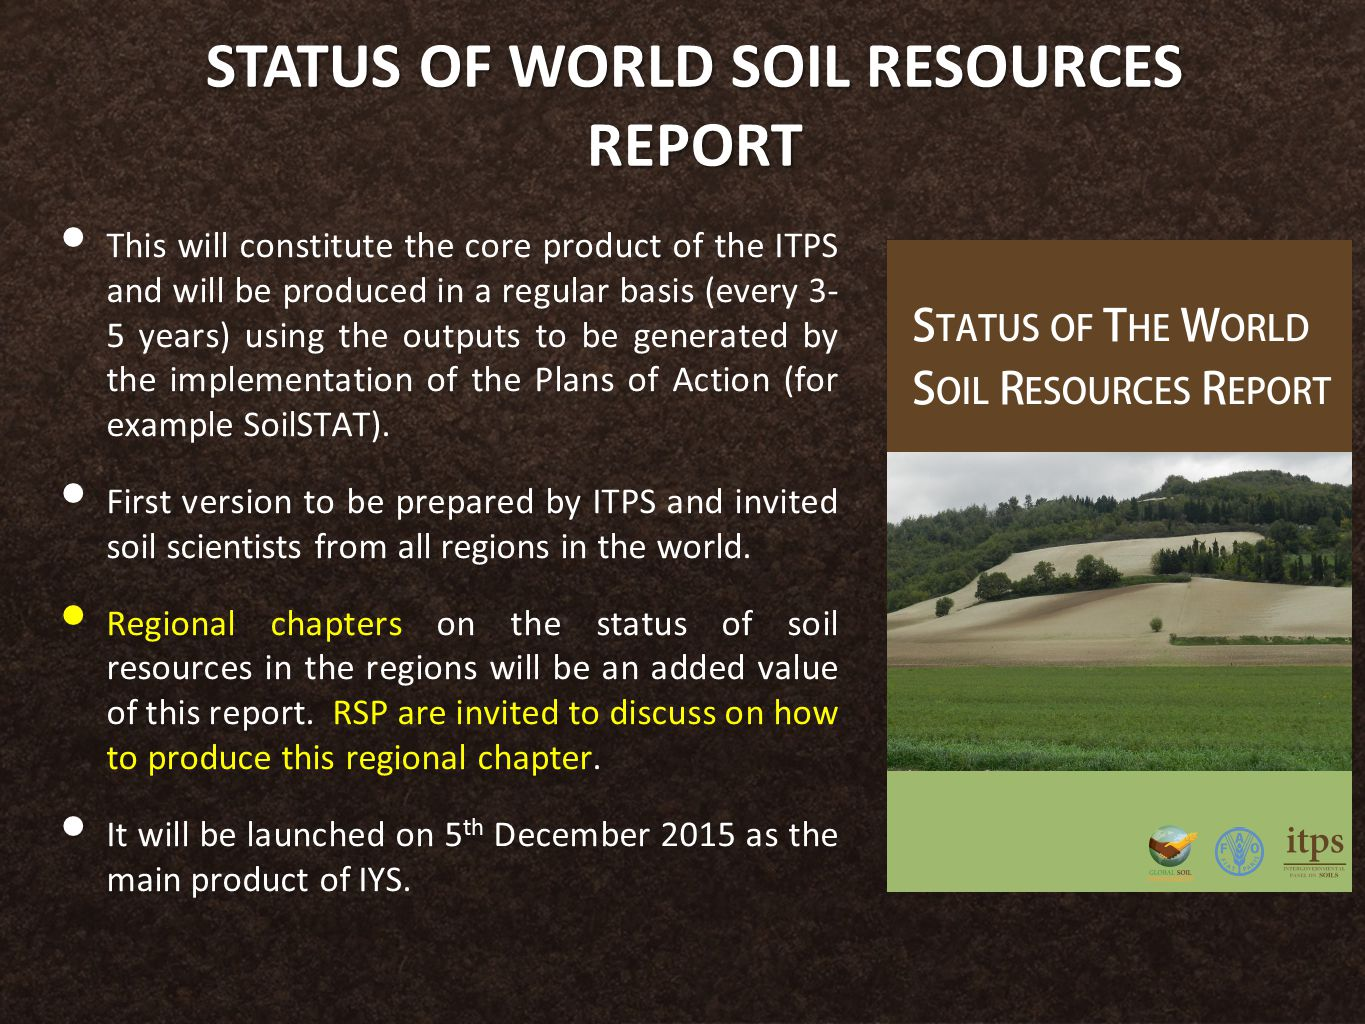 STATUS OF WORLD SOIL RESOURCES REPORT This will constitute the core product of the ITPS and will be produced in a regular basis (every 3- 5 years) using the outputs to be generated by the implementation of the Plans of Action (for example SoilSTAT).